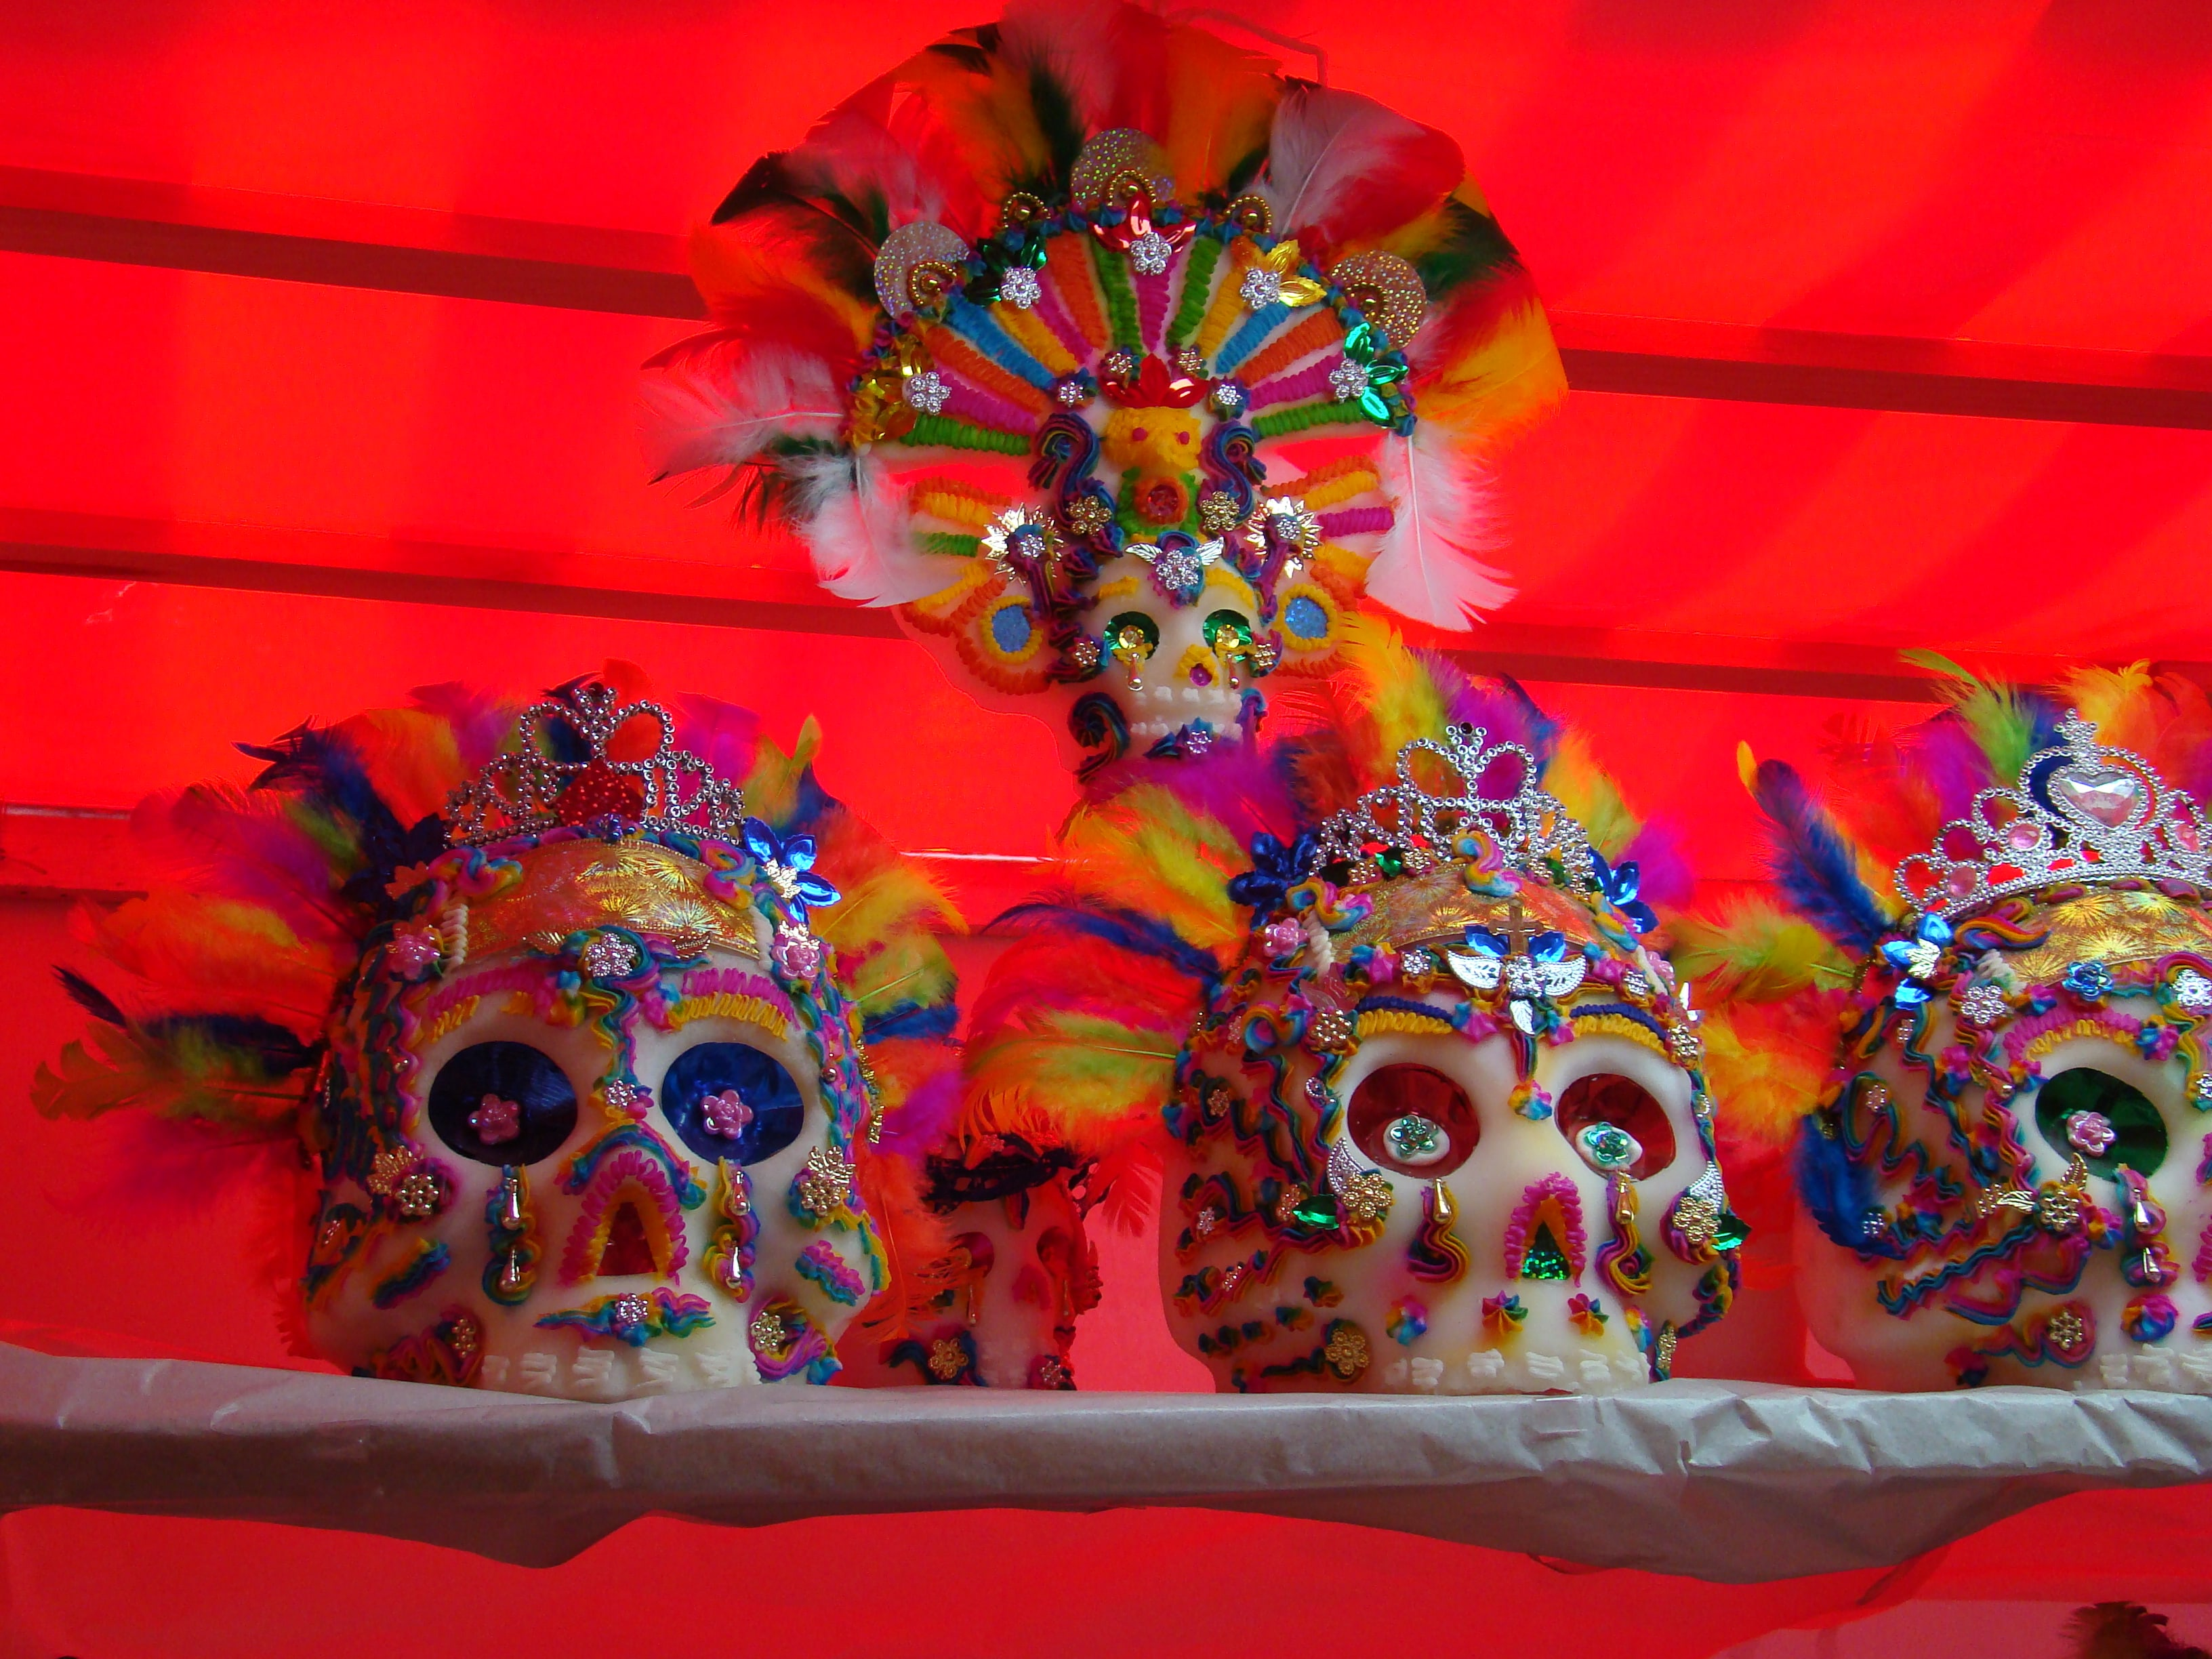 Everything you need to know about the sugar skull decorative sugar skulls jorge navaflickr biocorpaavc Images